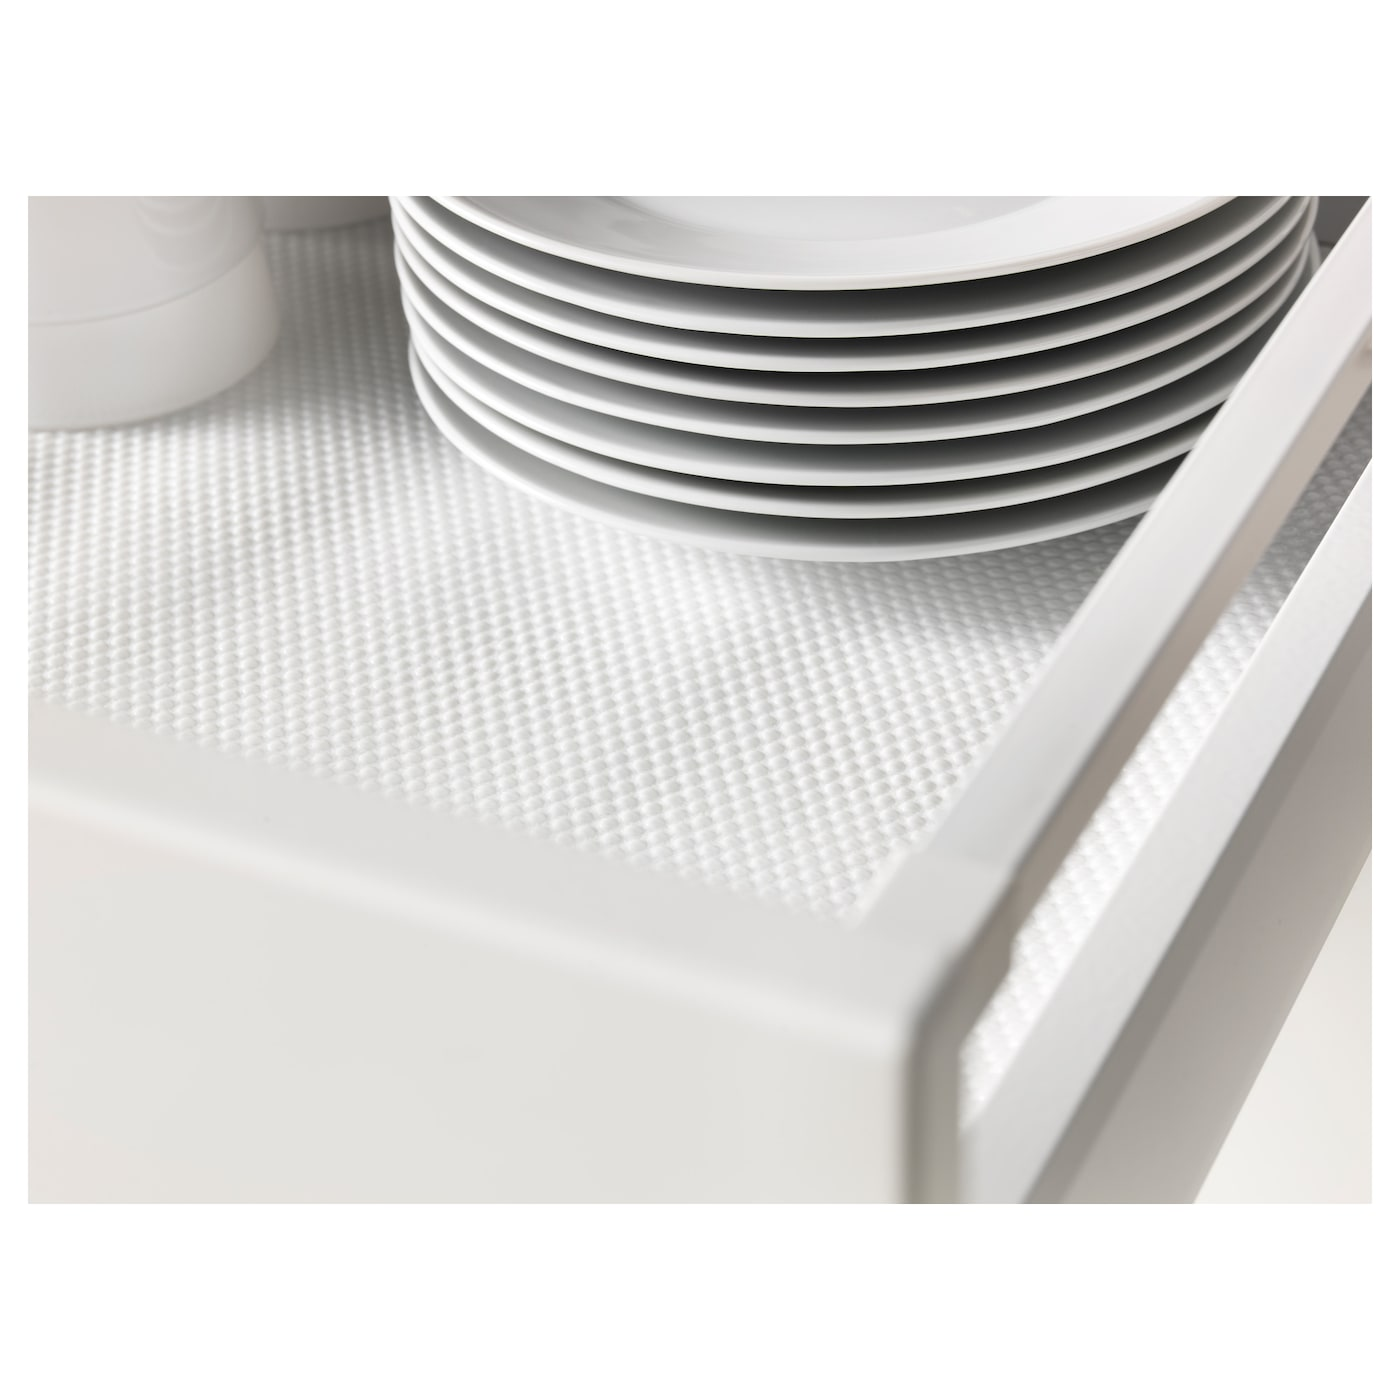 IKEA VARIERA drawer mat Dampens sounds and protects drawers and shelves against scratching.